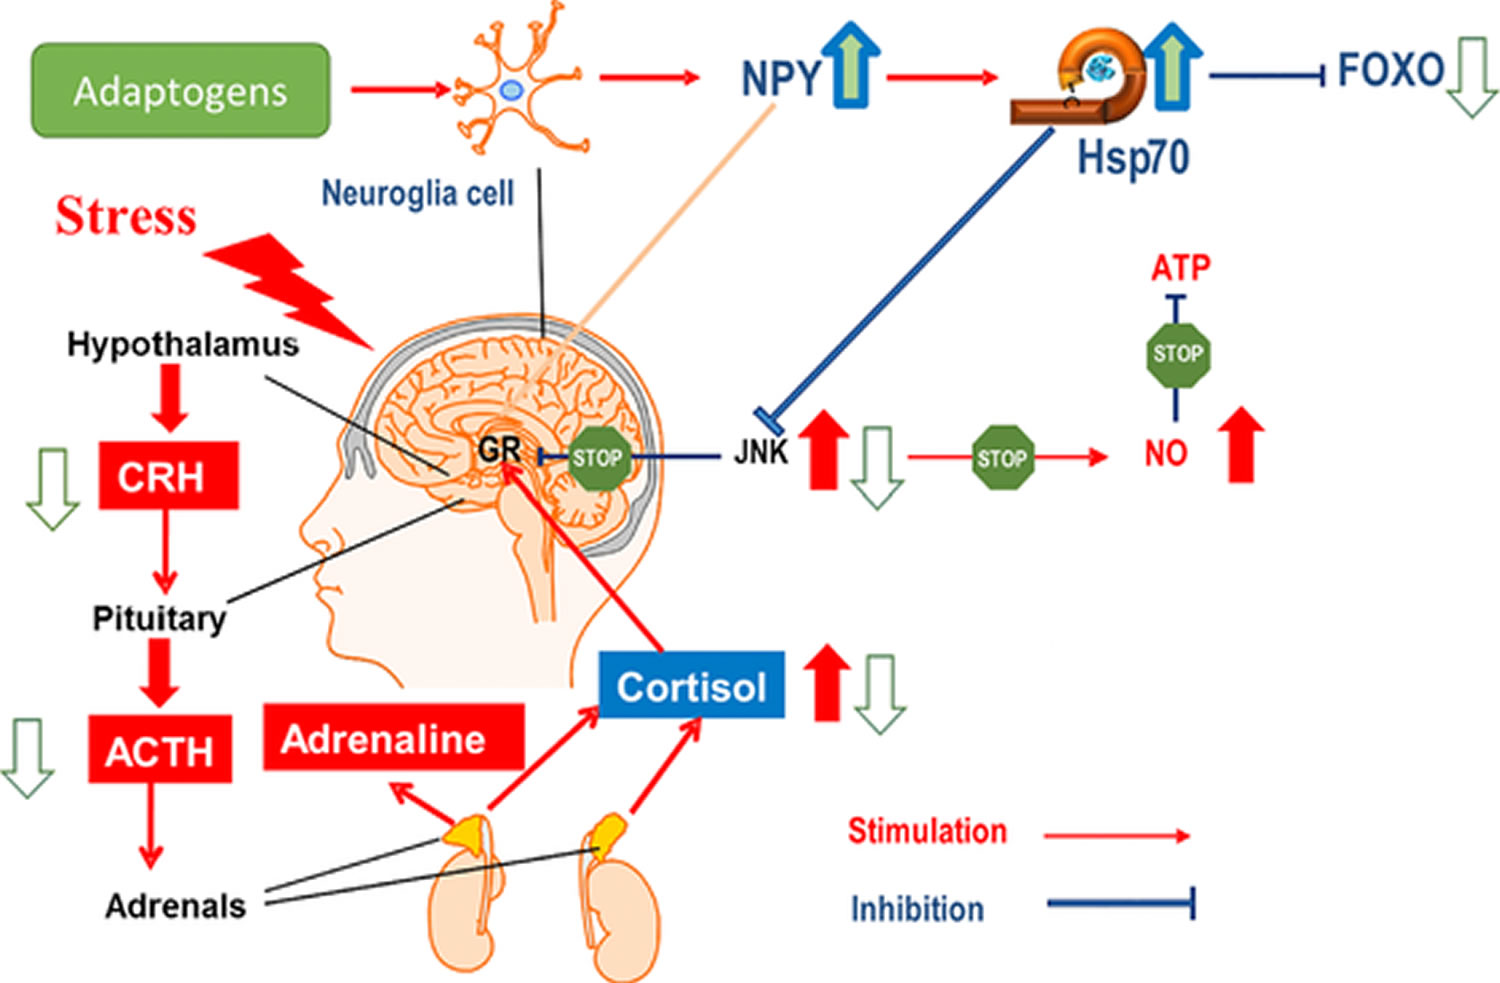 Hypothetical mechanism of action of adaptogens on the stress system in depression